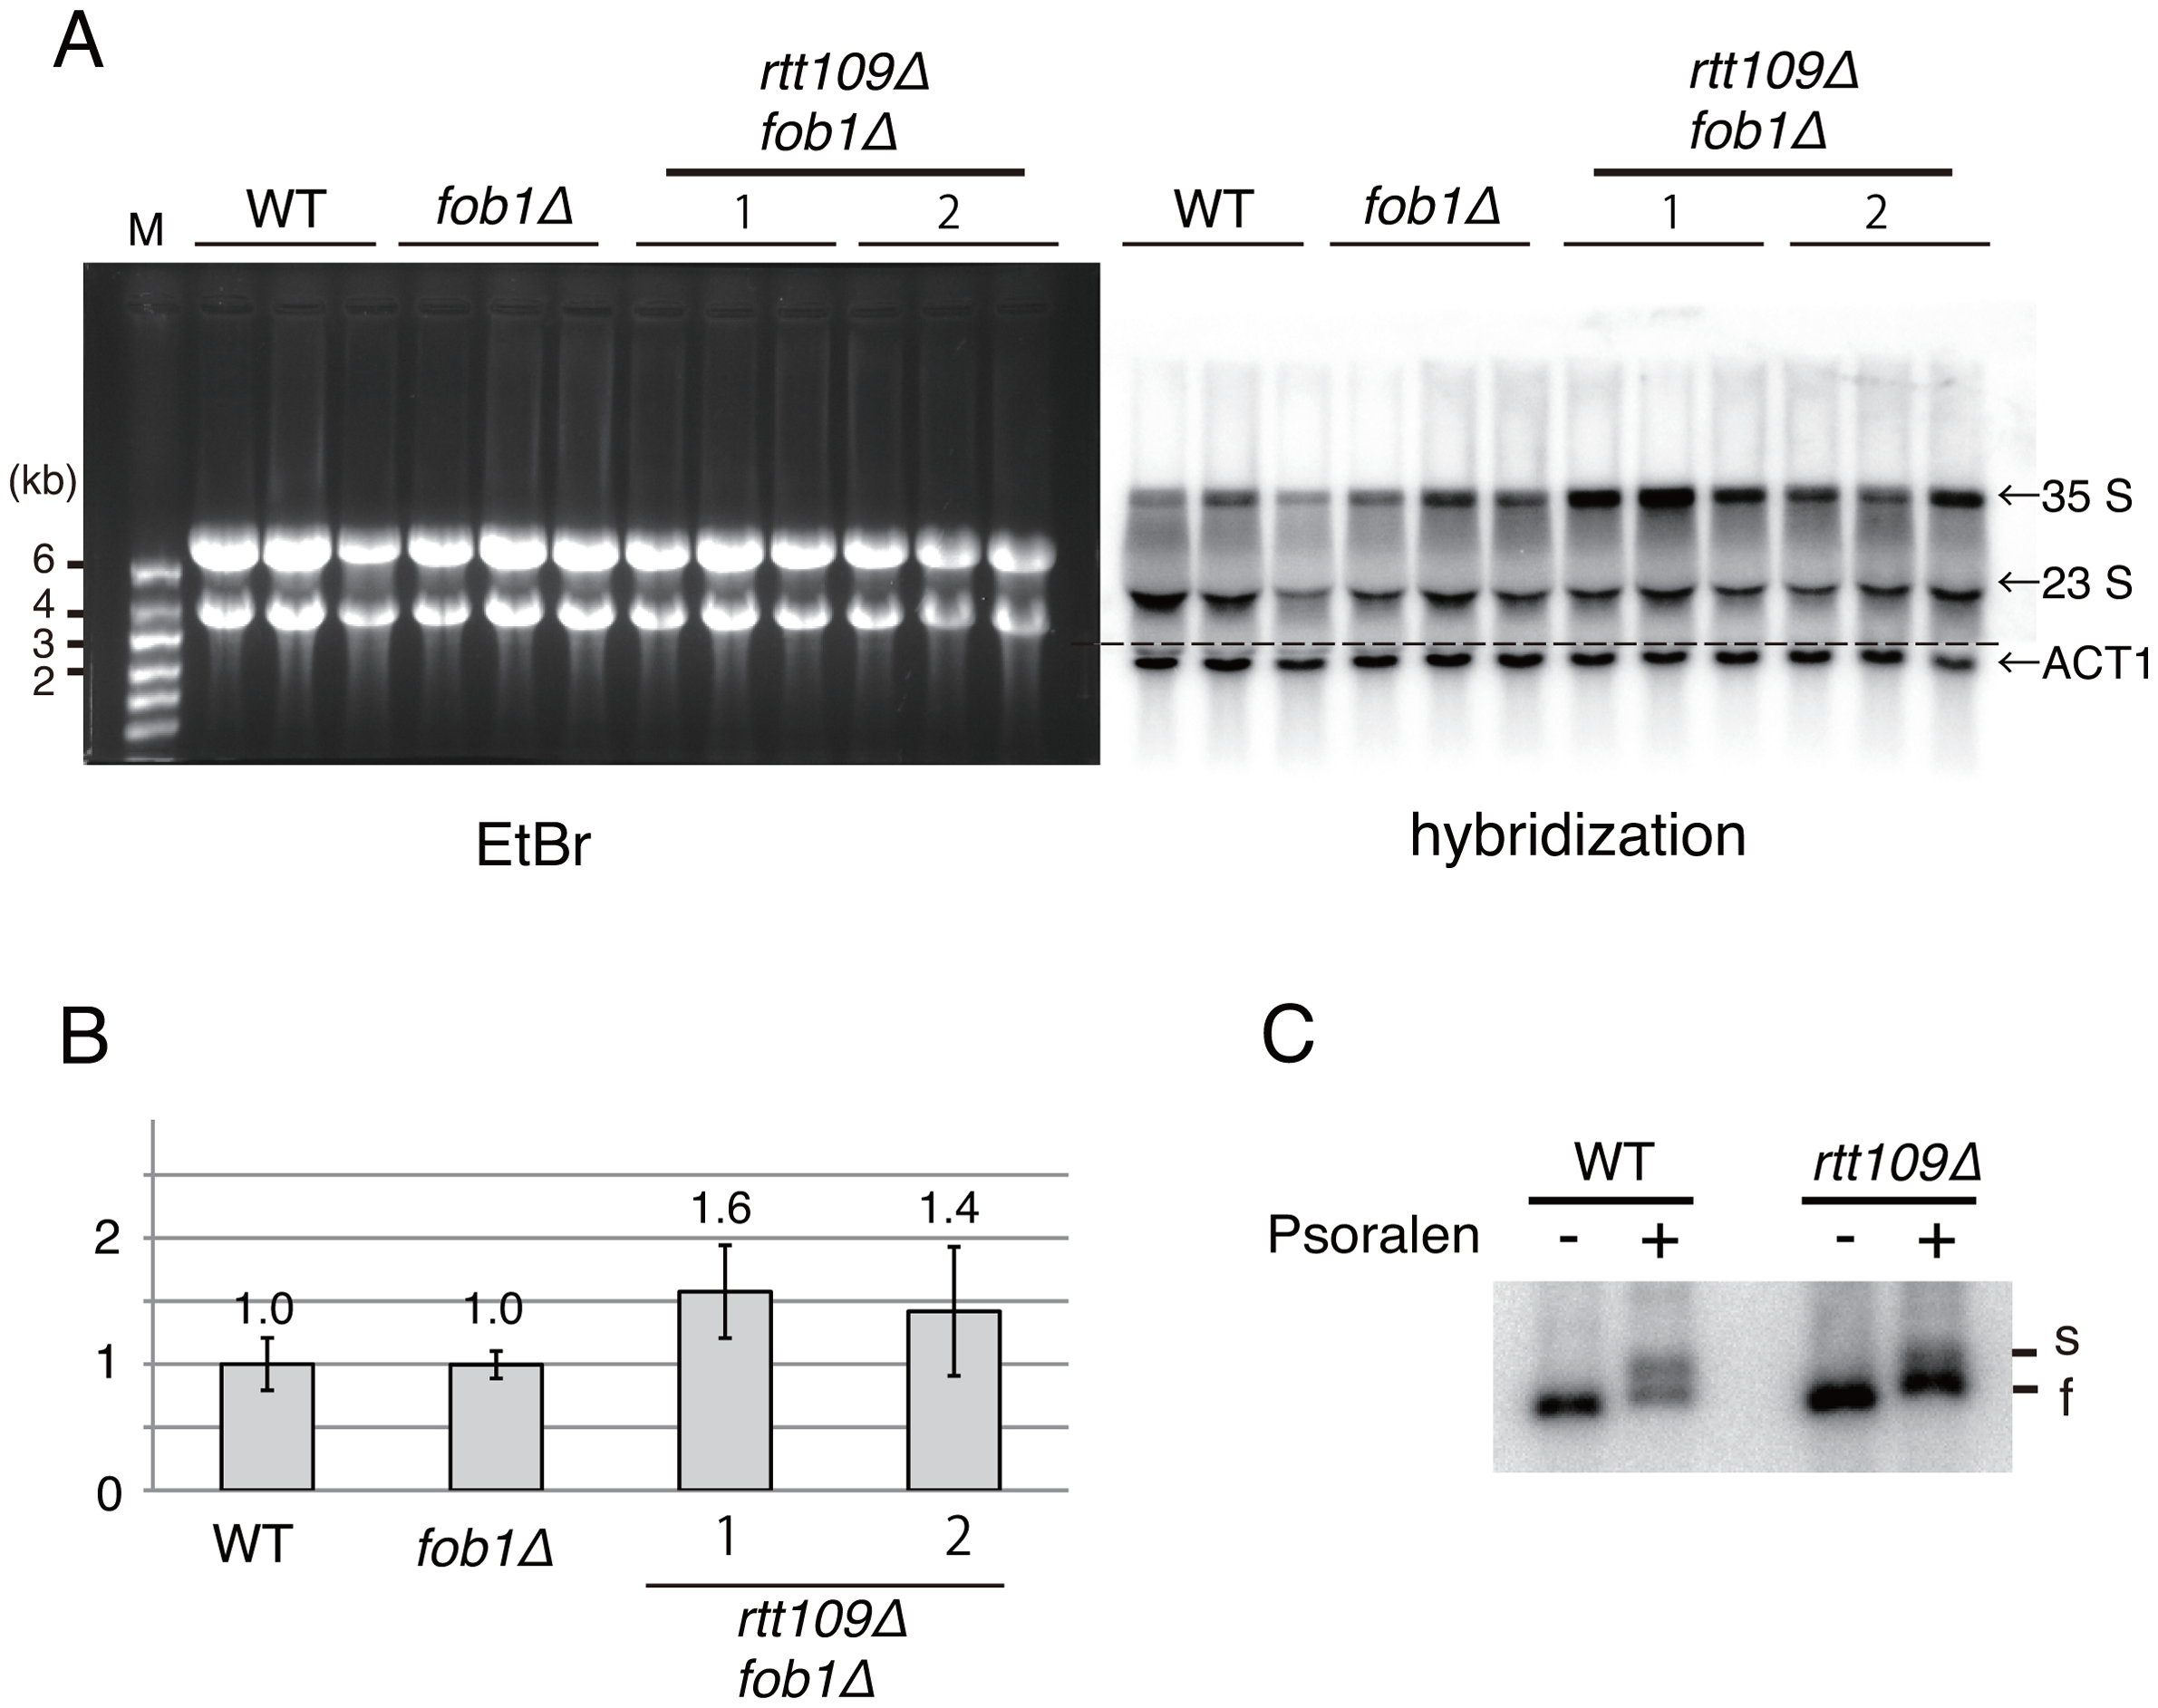 Hyper-amplification of rRNA genes is not a result of transcriptional compensation.